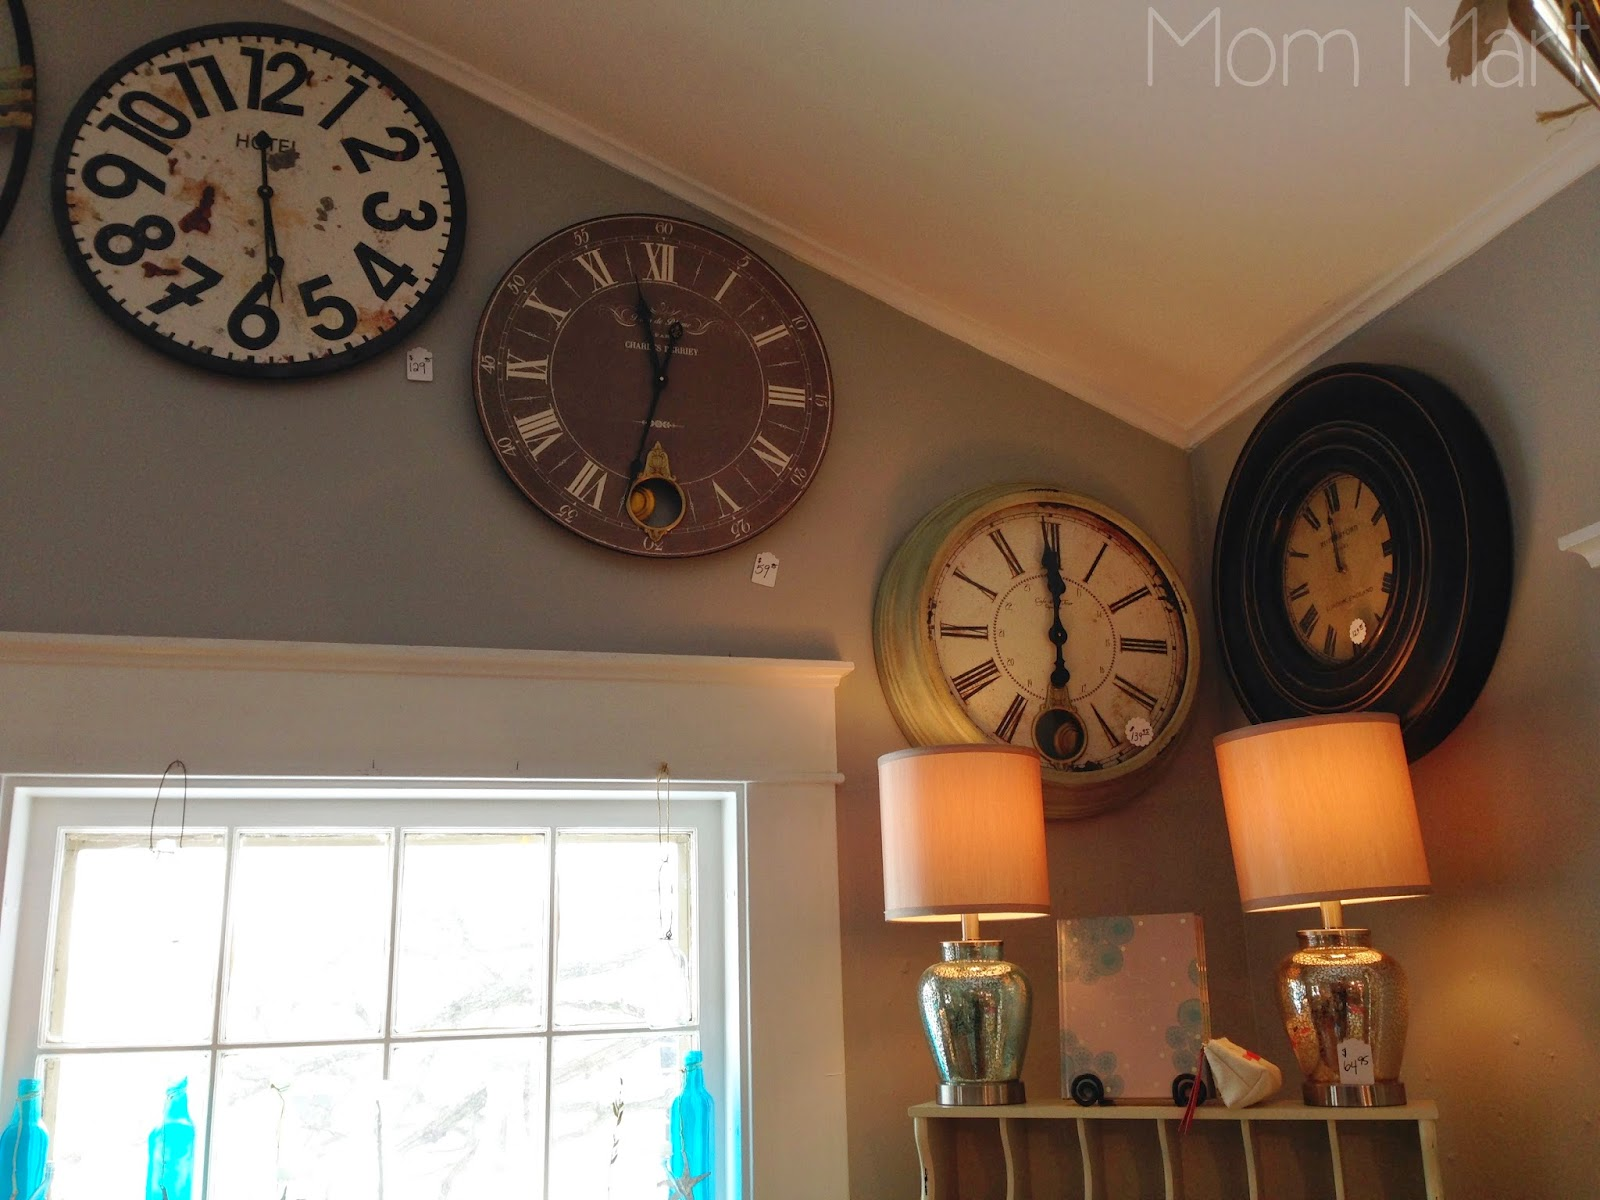 Shopping for home goods #Shopping #ForTheHome #Decorate #WallClock #HomeDecor